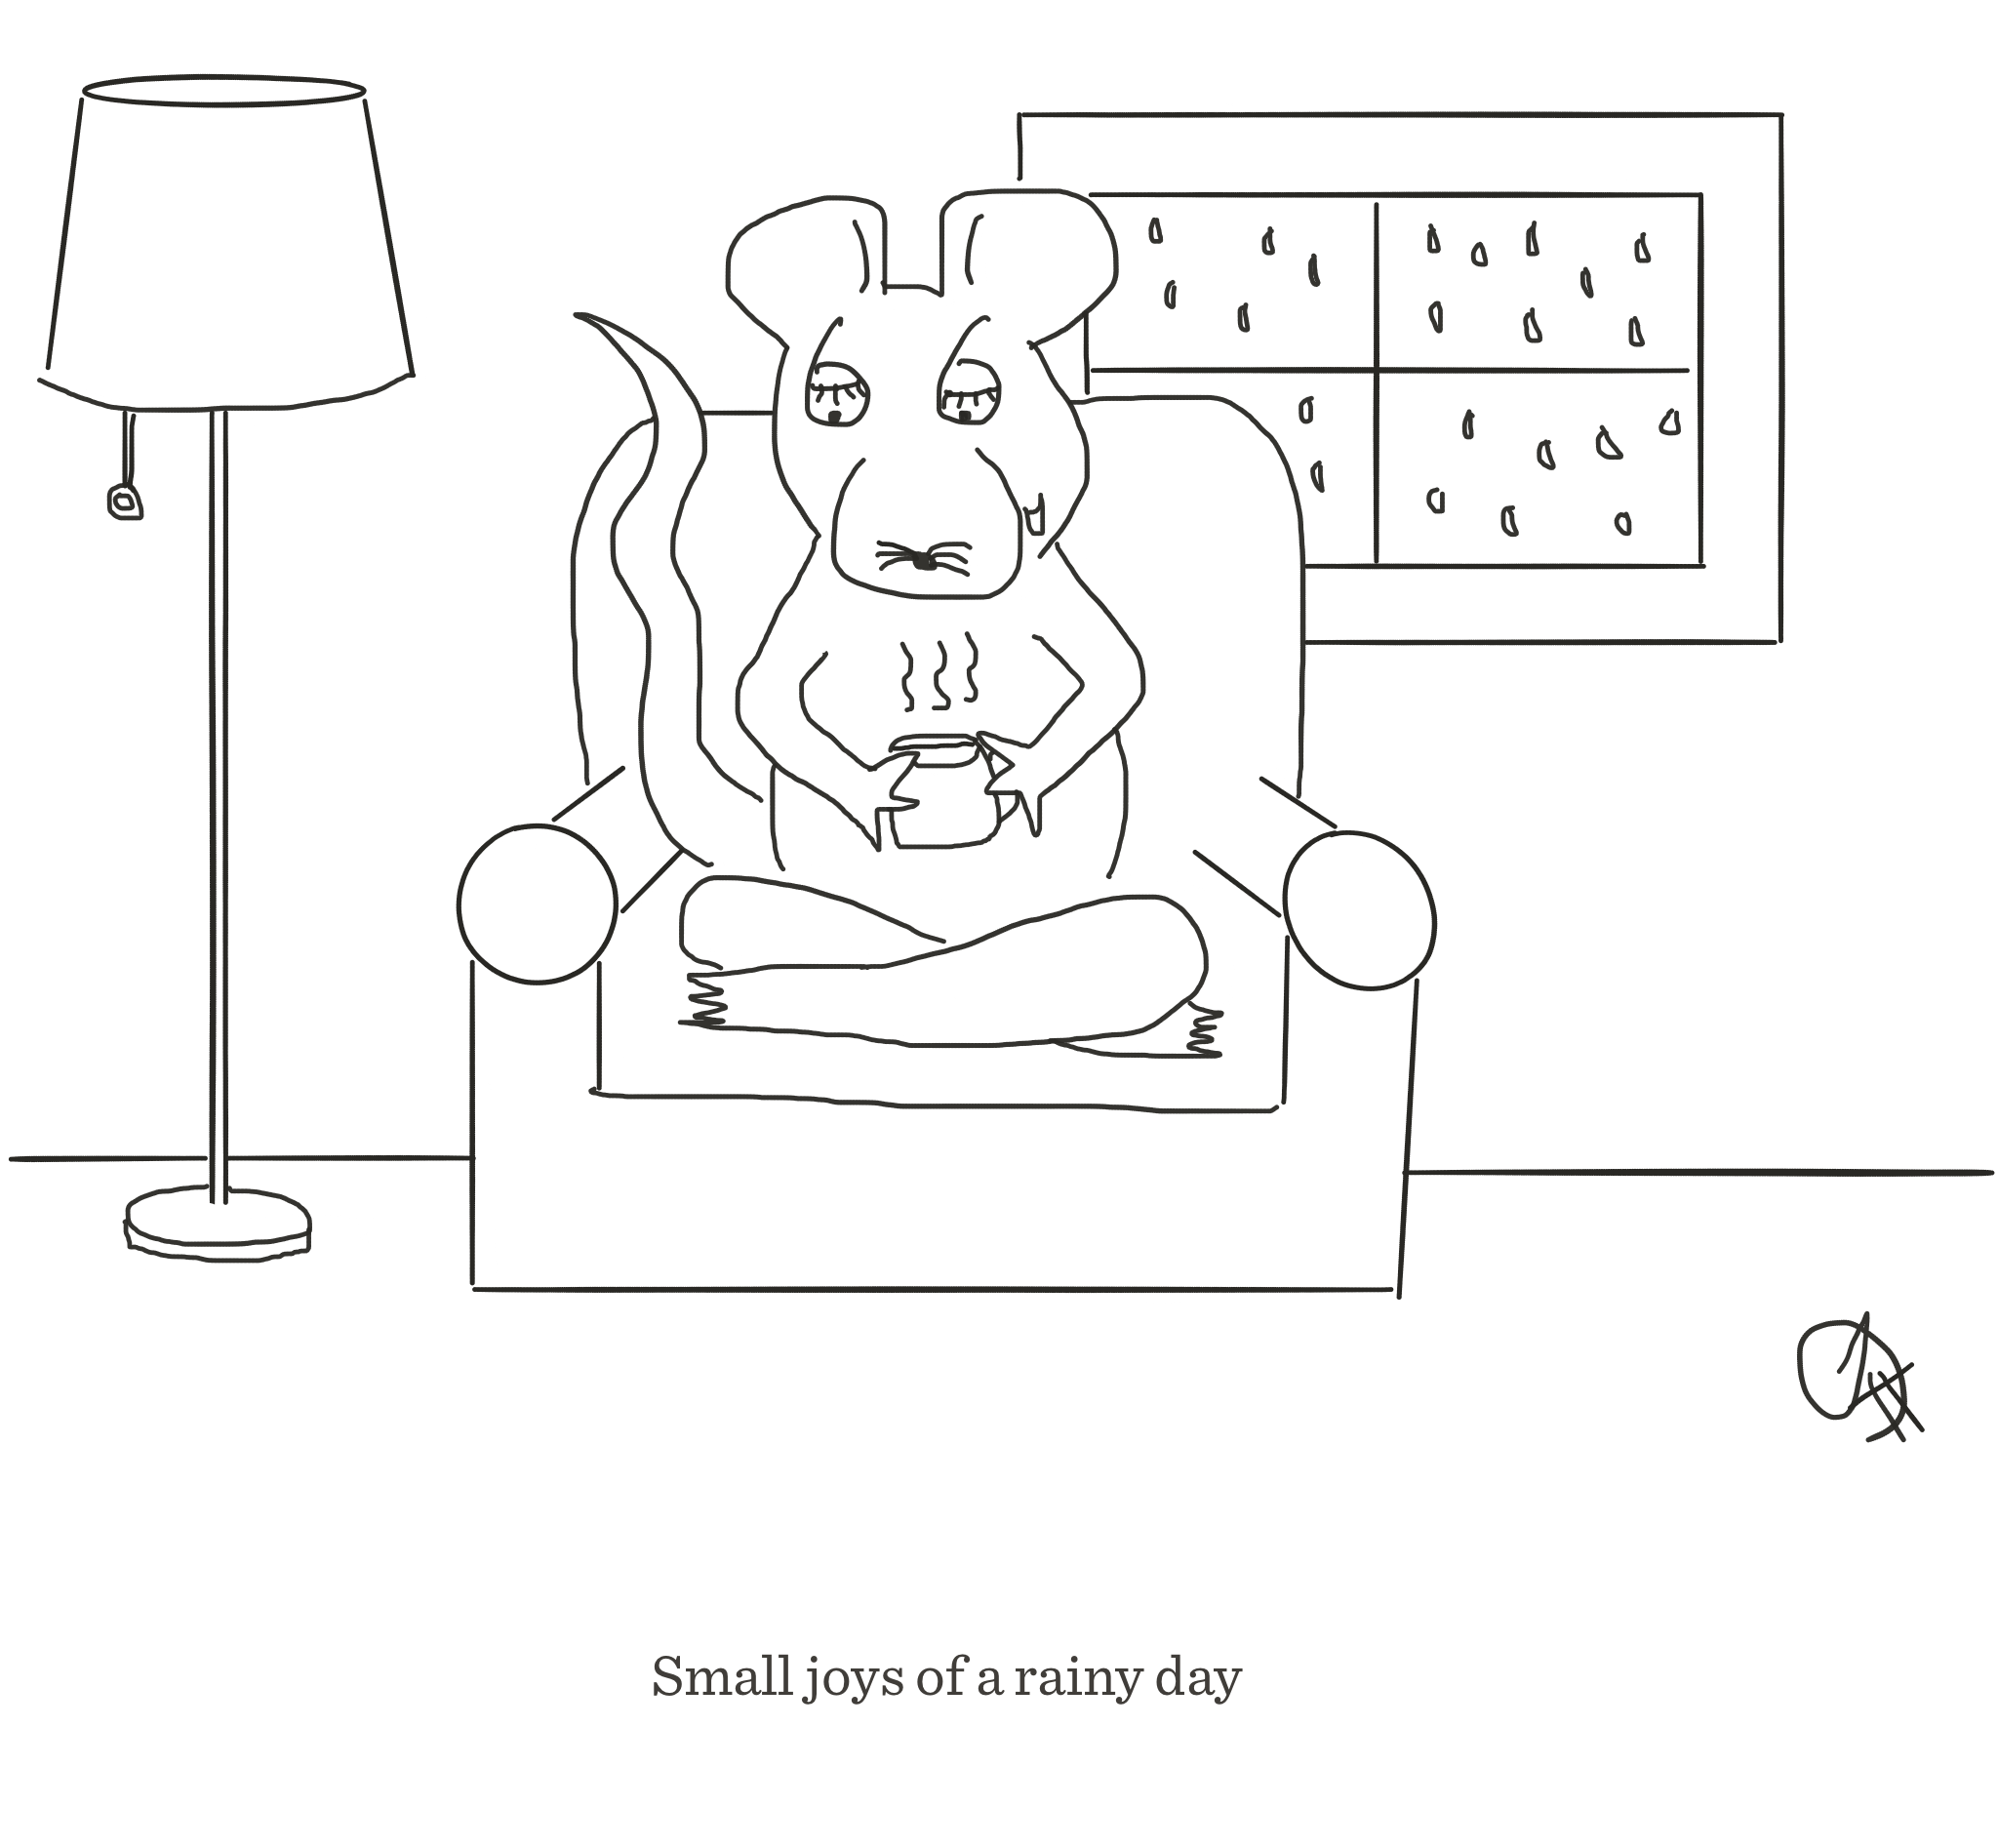 The joys of a rainy day, The Happy Rat cartoon